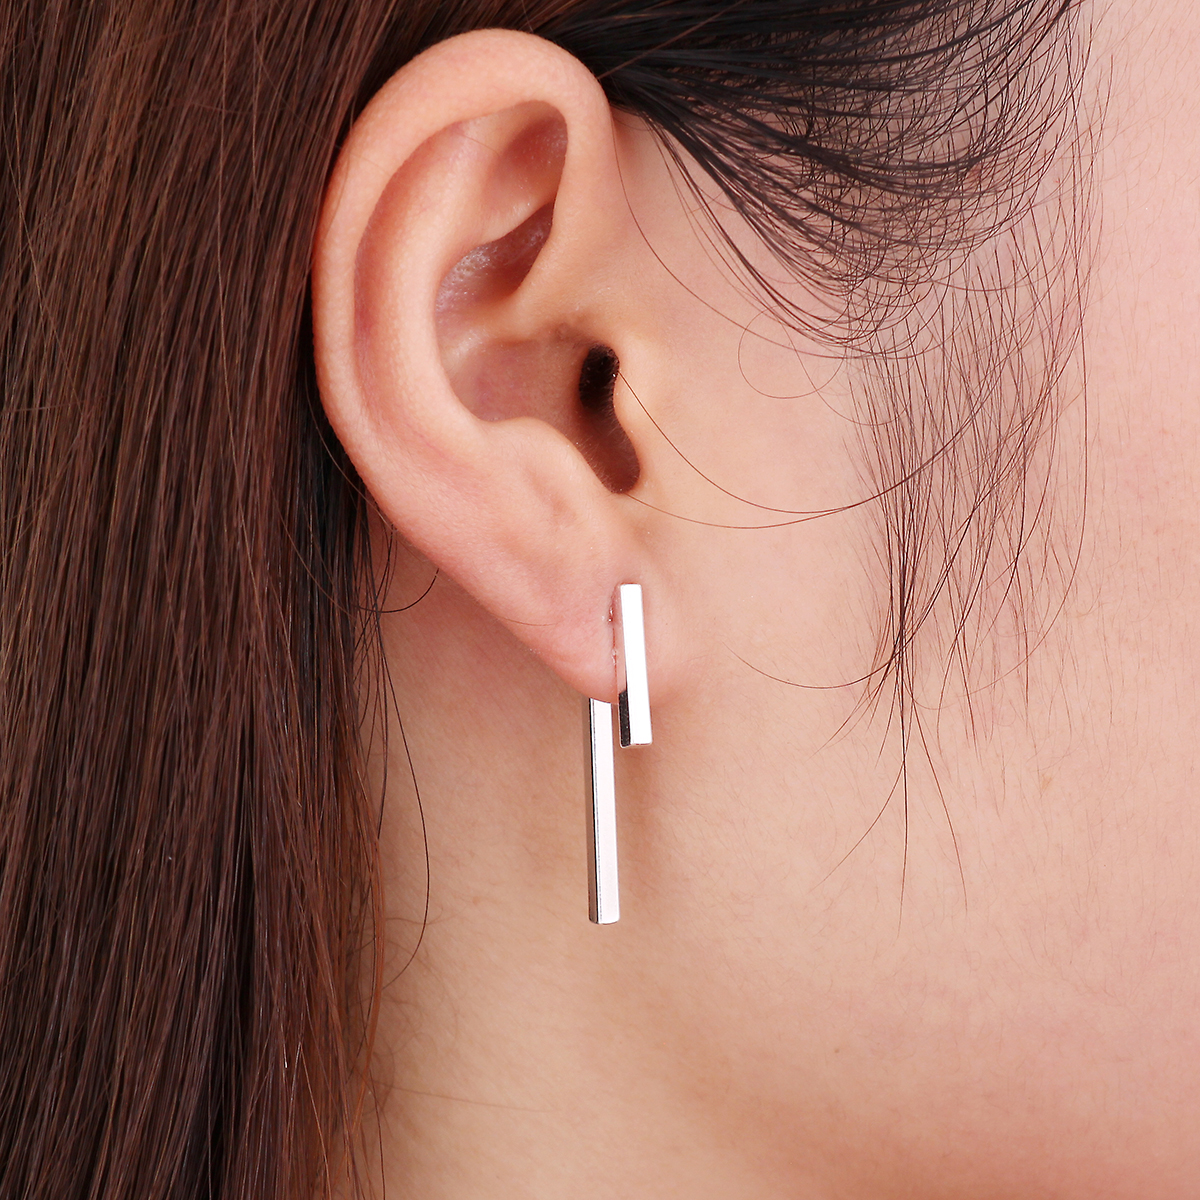 Jisensp Summer Style Punk Fashion Simple T Bar Pendientes chaqueta para mujeres regalos de boda boucle d'oreille femme ED140